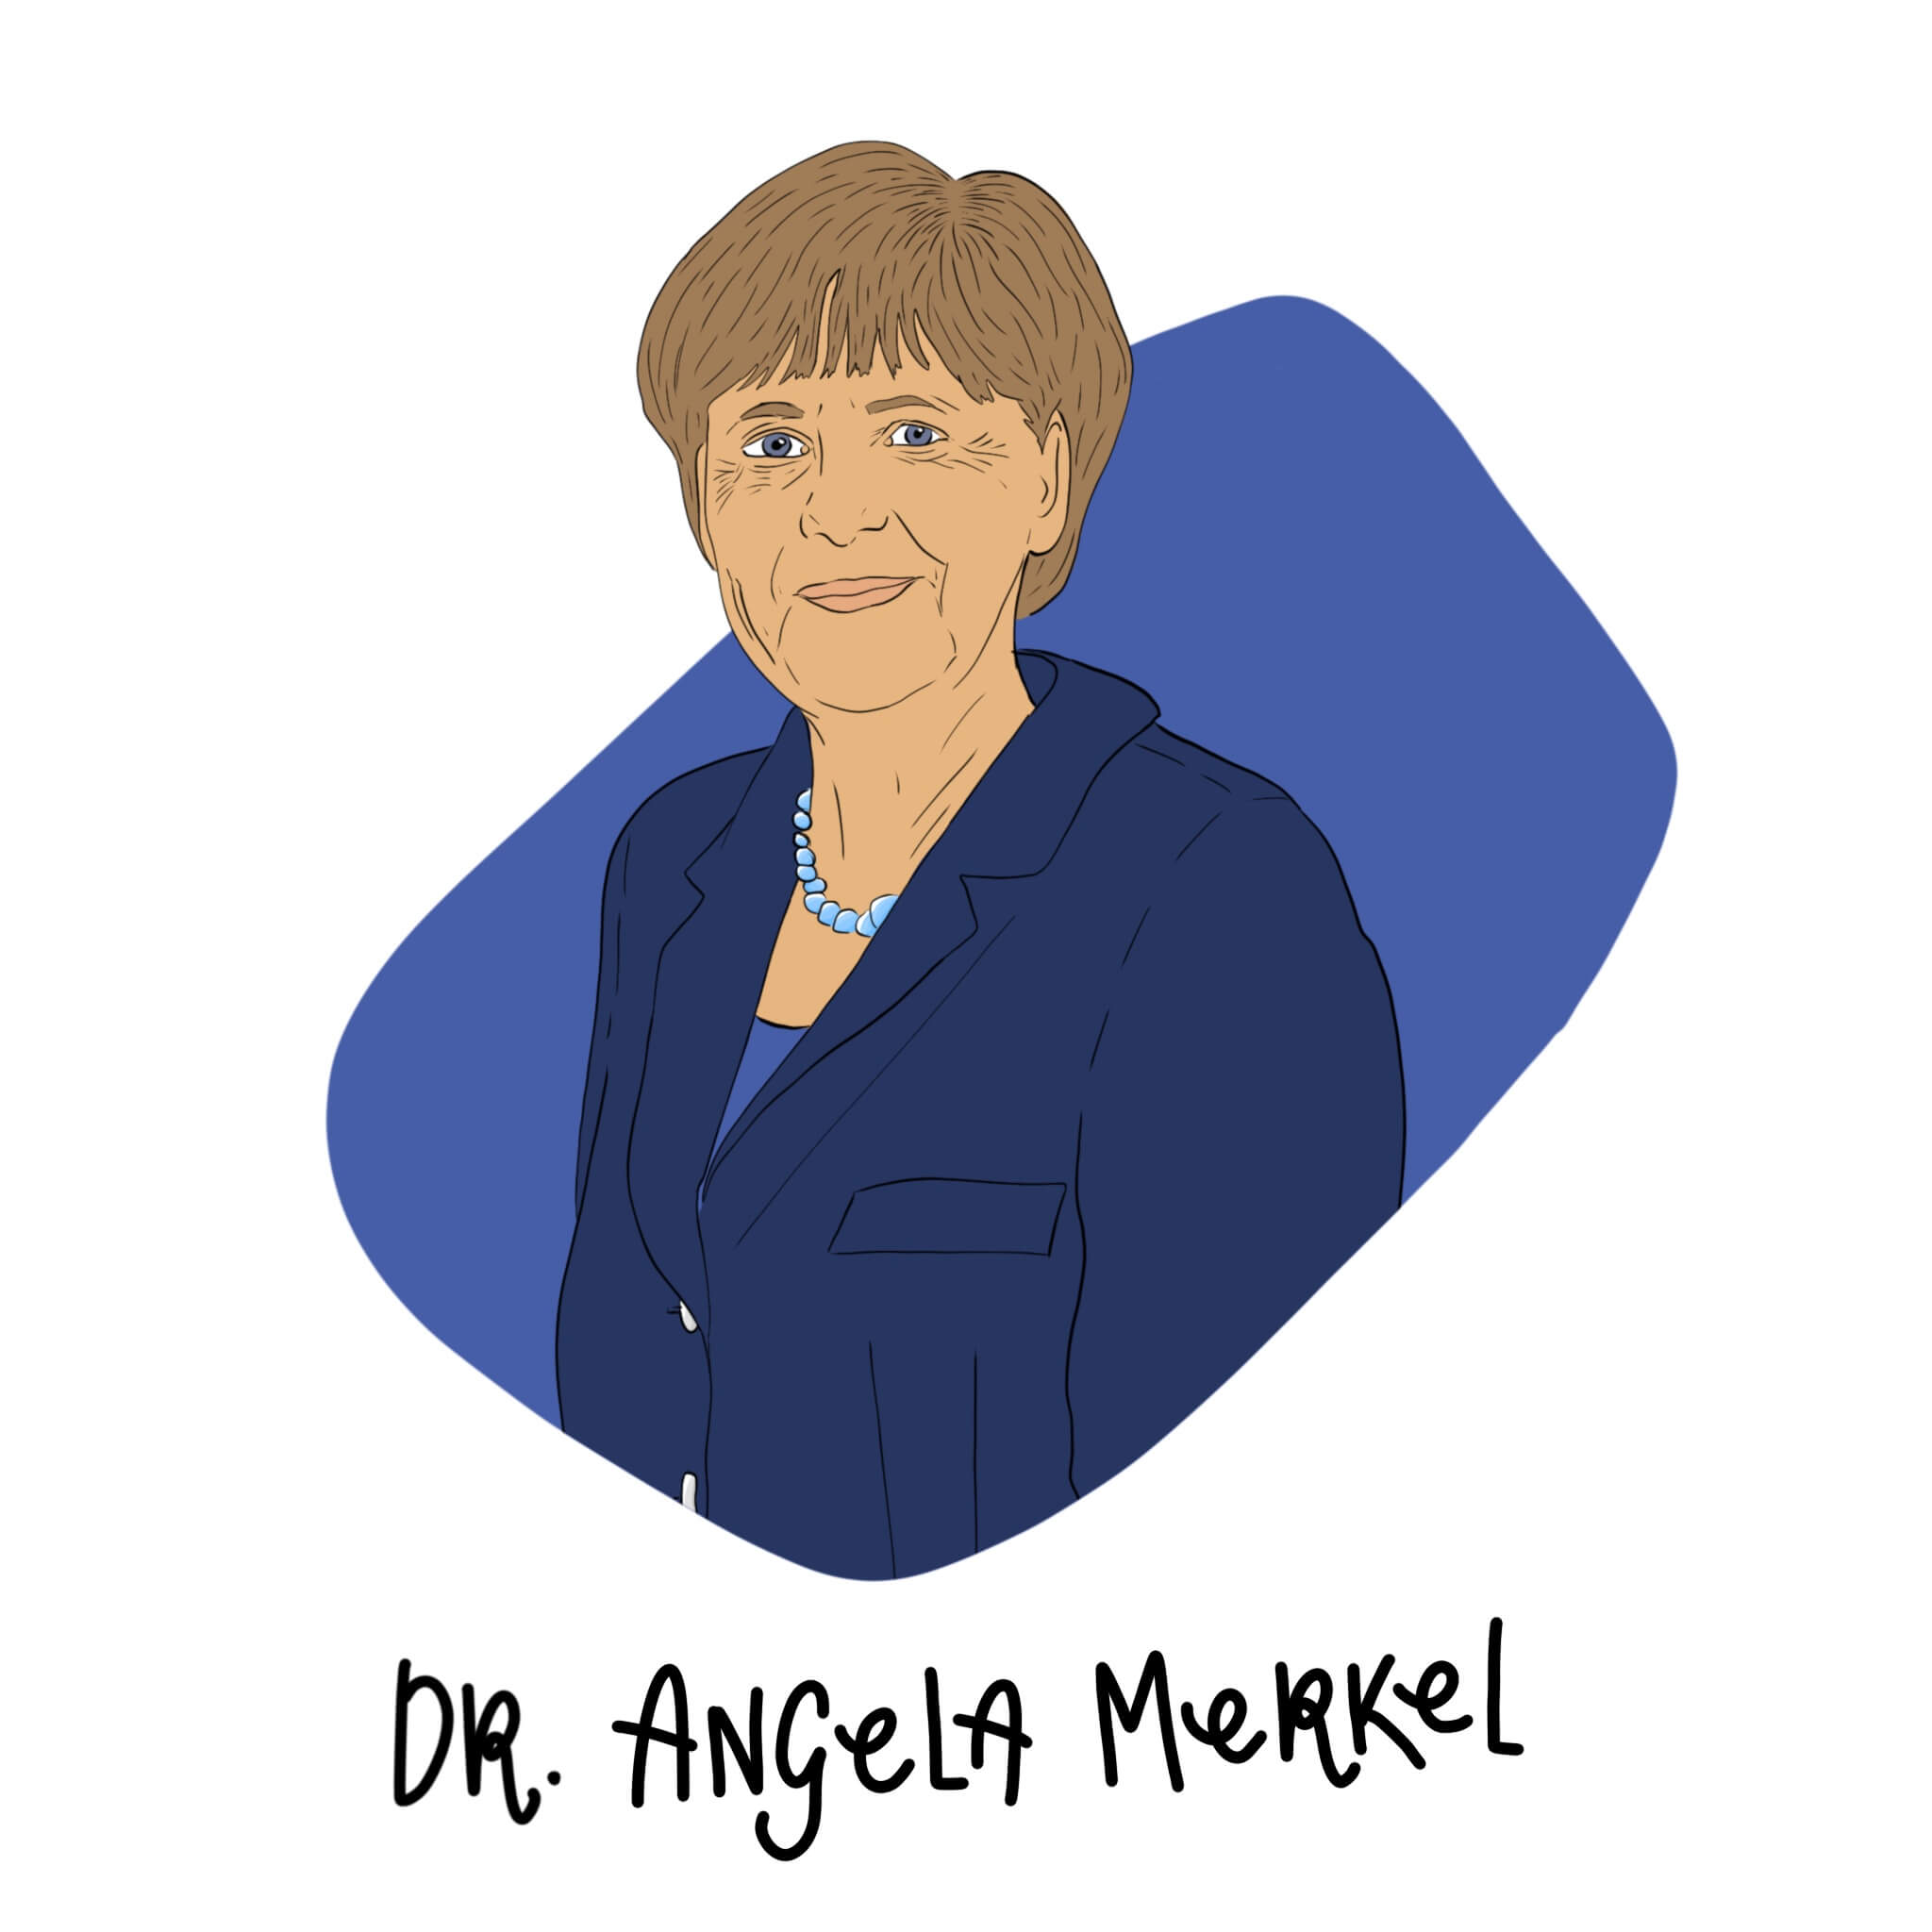 Dr. Angela Merkel Illustration by Jessica Ringelstein